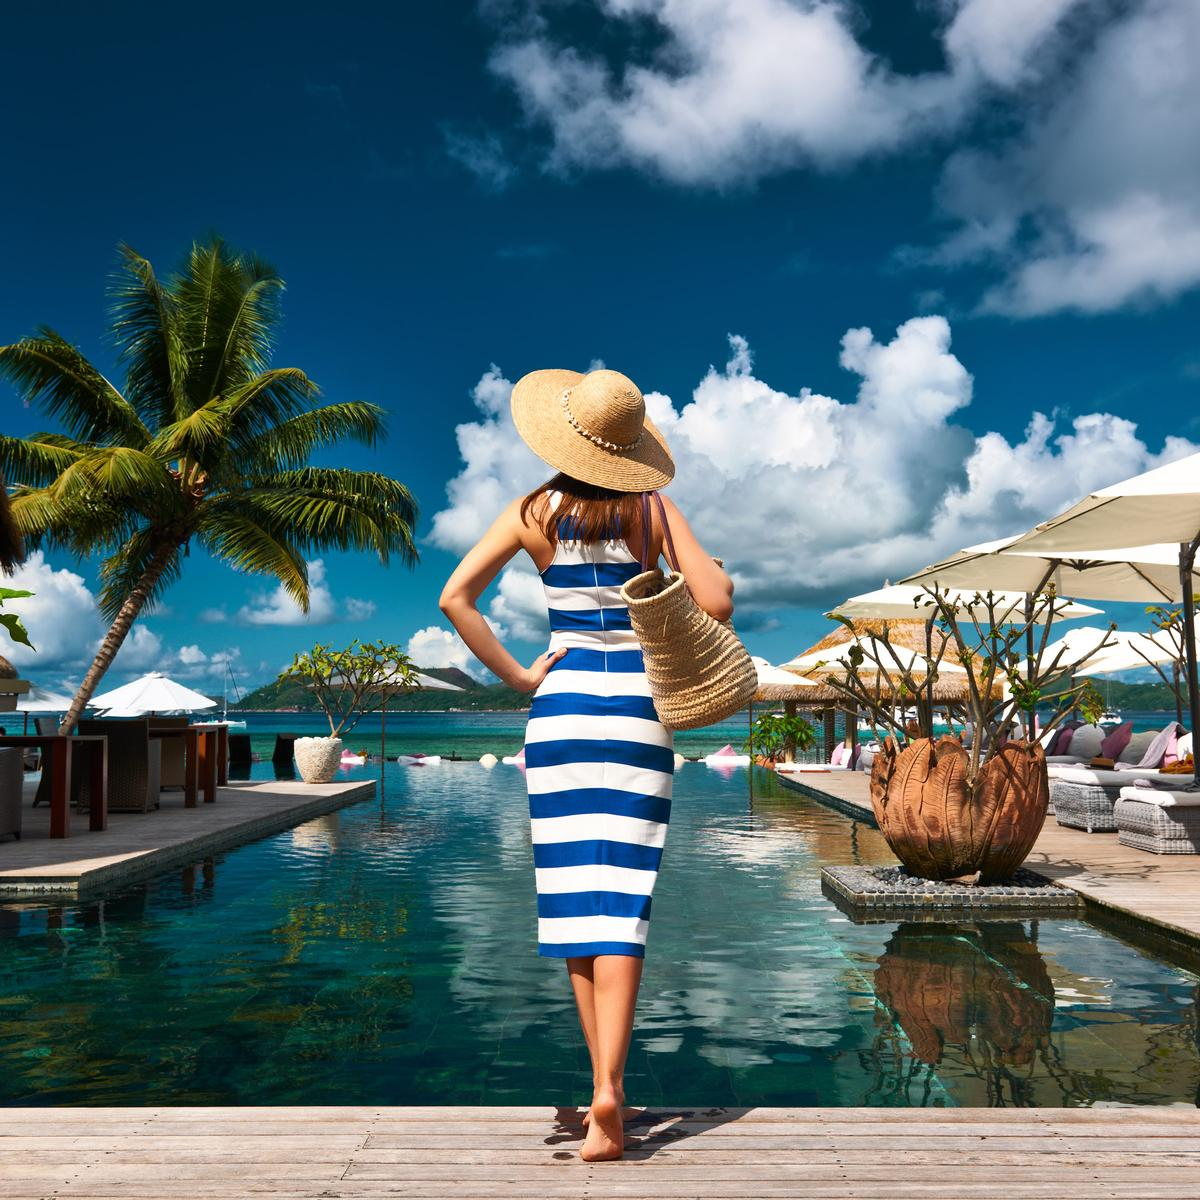 Spa Opportunities Report Names Most Popular Luxury Hotel Brands